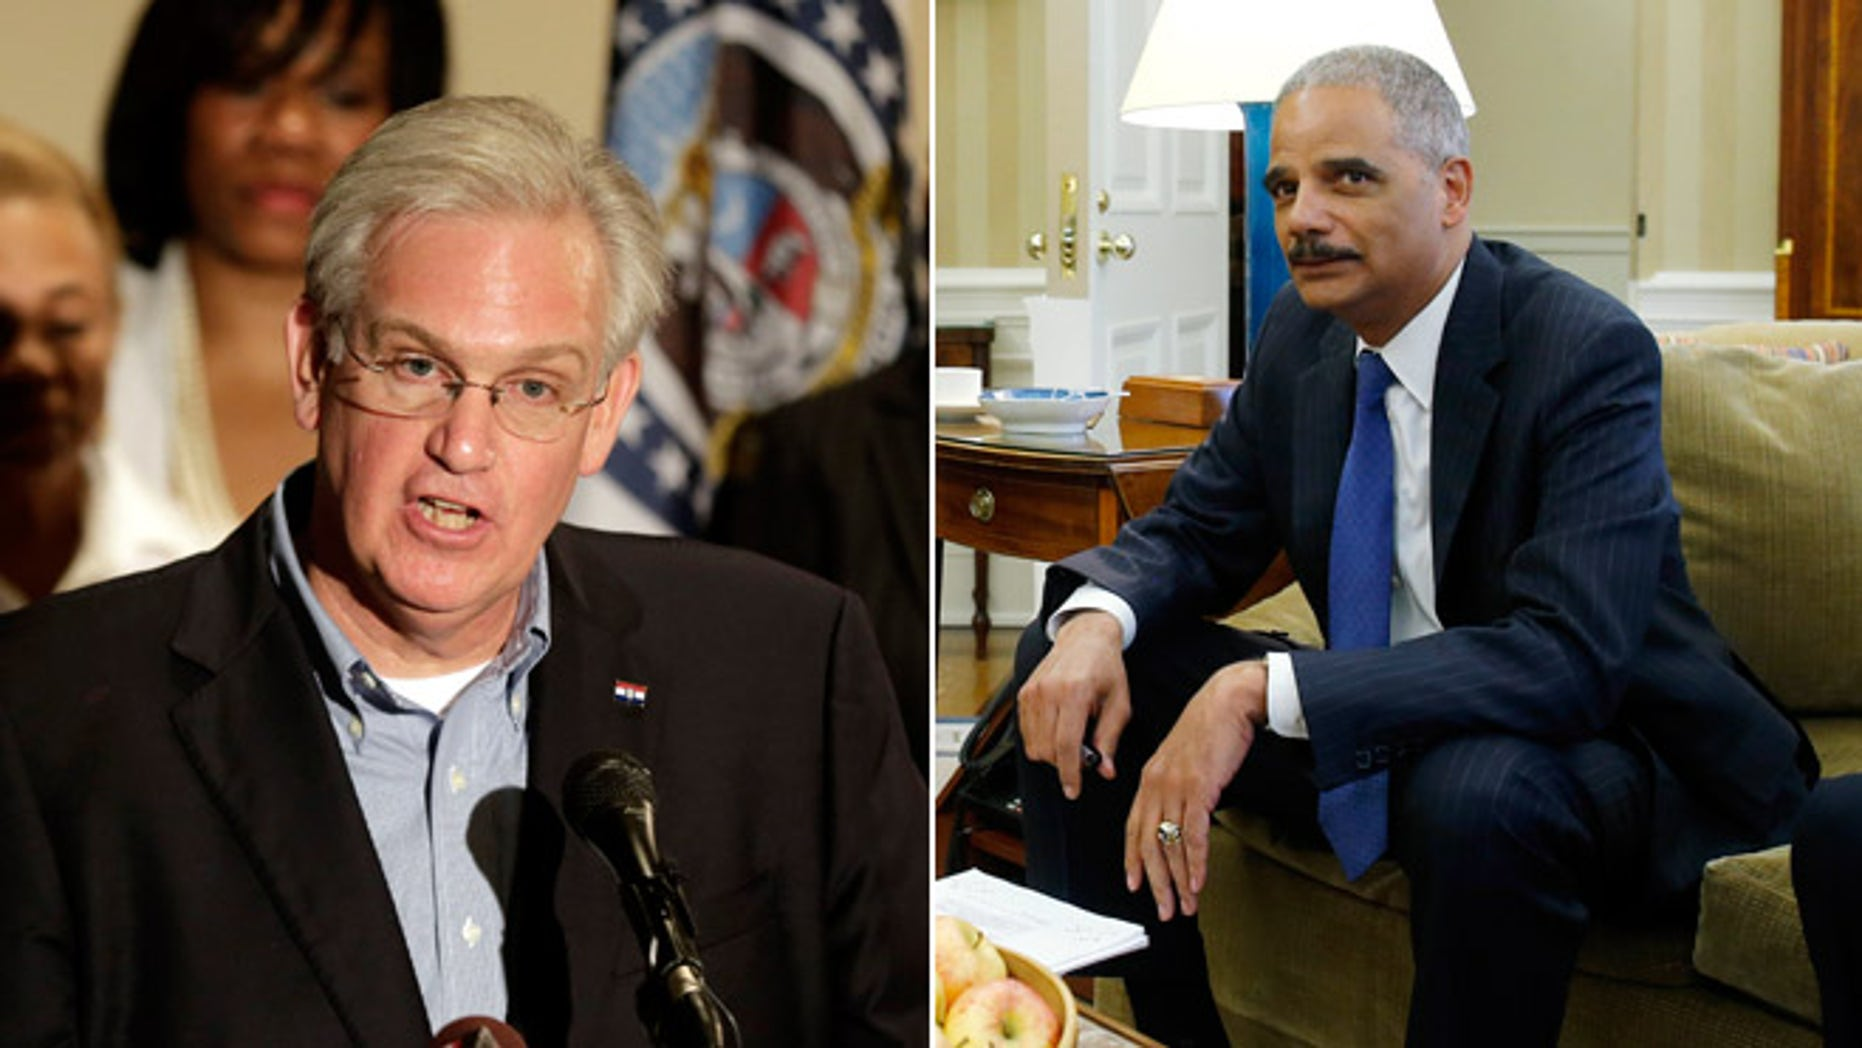 Missouri Gov. Jay Nixon speaks at a news conference, Saturday, Aug. 16, 2014, in Ferguson, Mo. and Attorney General Eric Holder in the Oval Office of the White House in Washington on Monday, Aug. 18, 2014.